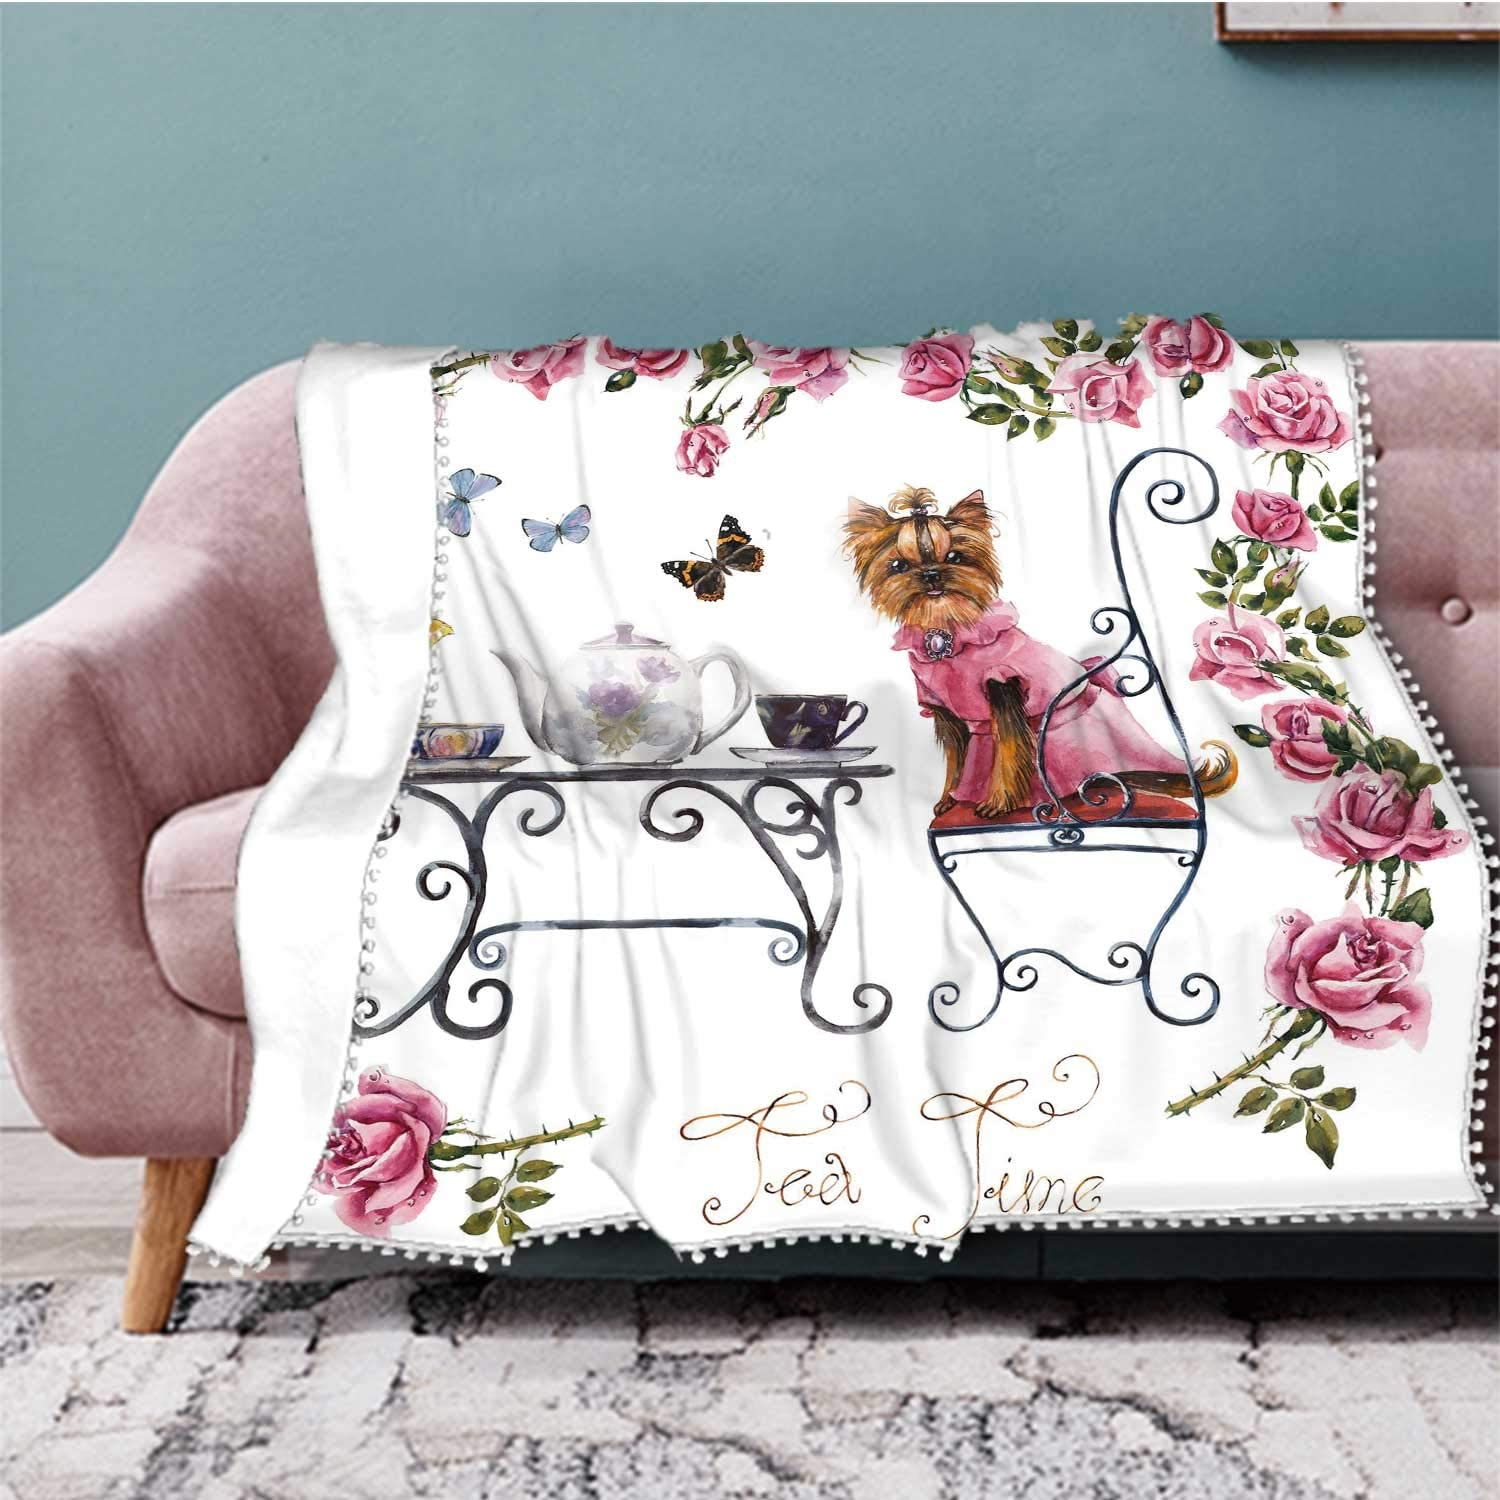 Hitecera Yorkshire Terrier.Tea Table in The Garden.Two Cup of Tea.Frame from Roses.Invitation to Tea Drinking.Hand Drawn,Blanket Throw Lightweight Super Soft Cozy Luxury Bed Blanket 50''x4